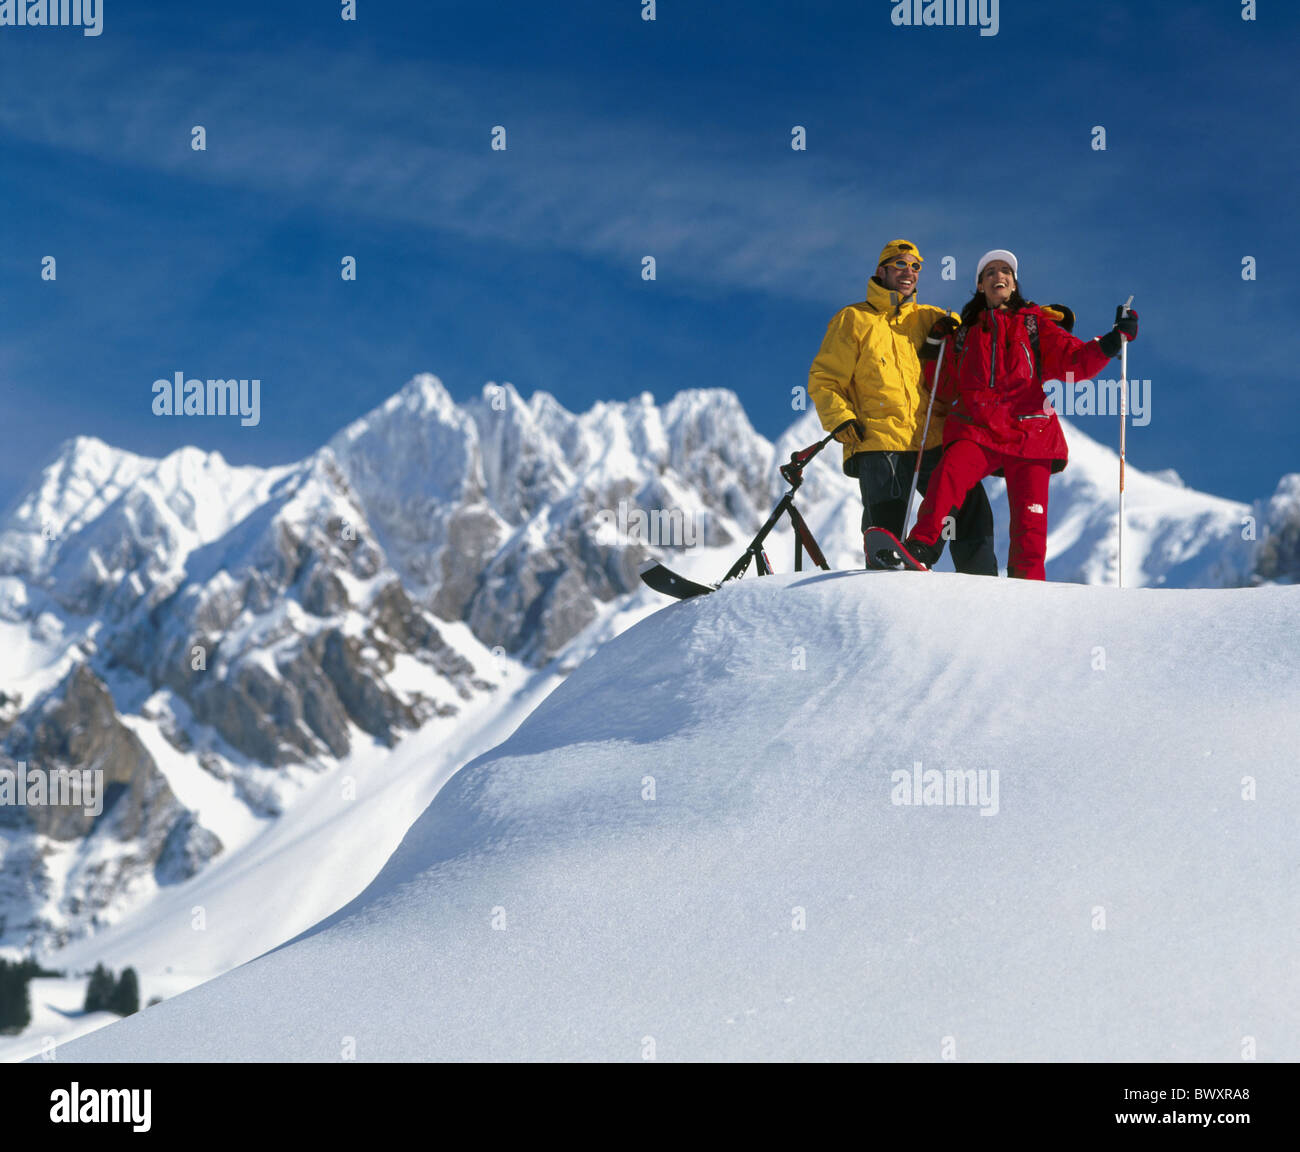 Snowscooter Immagini Snowscooter Fotos Stock Alamy